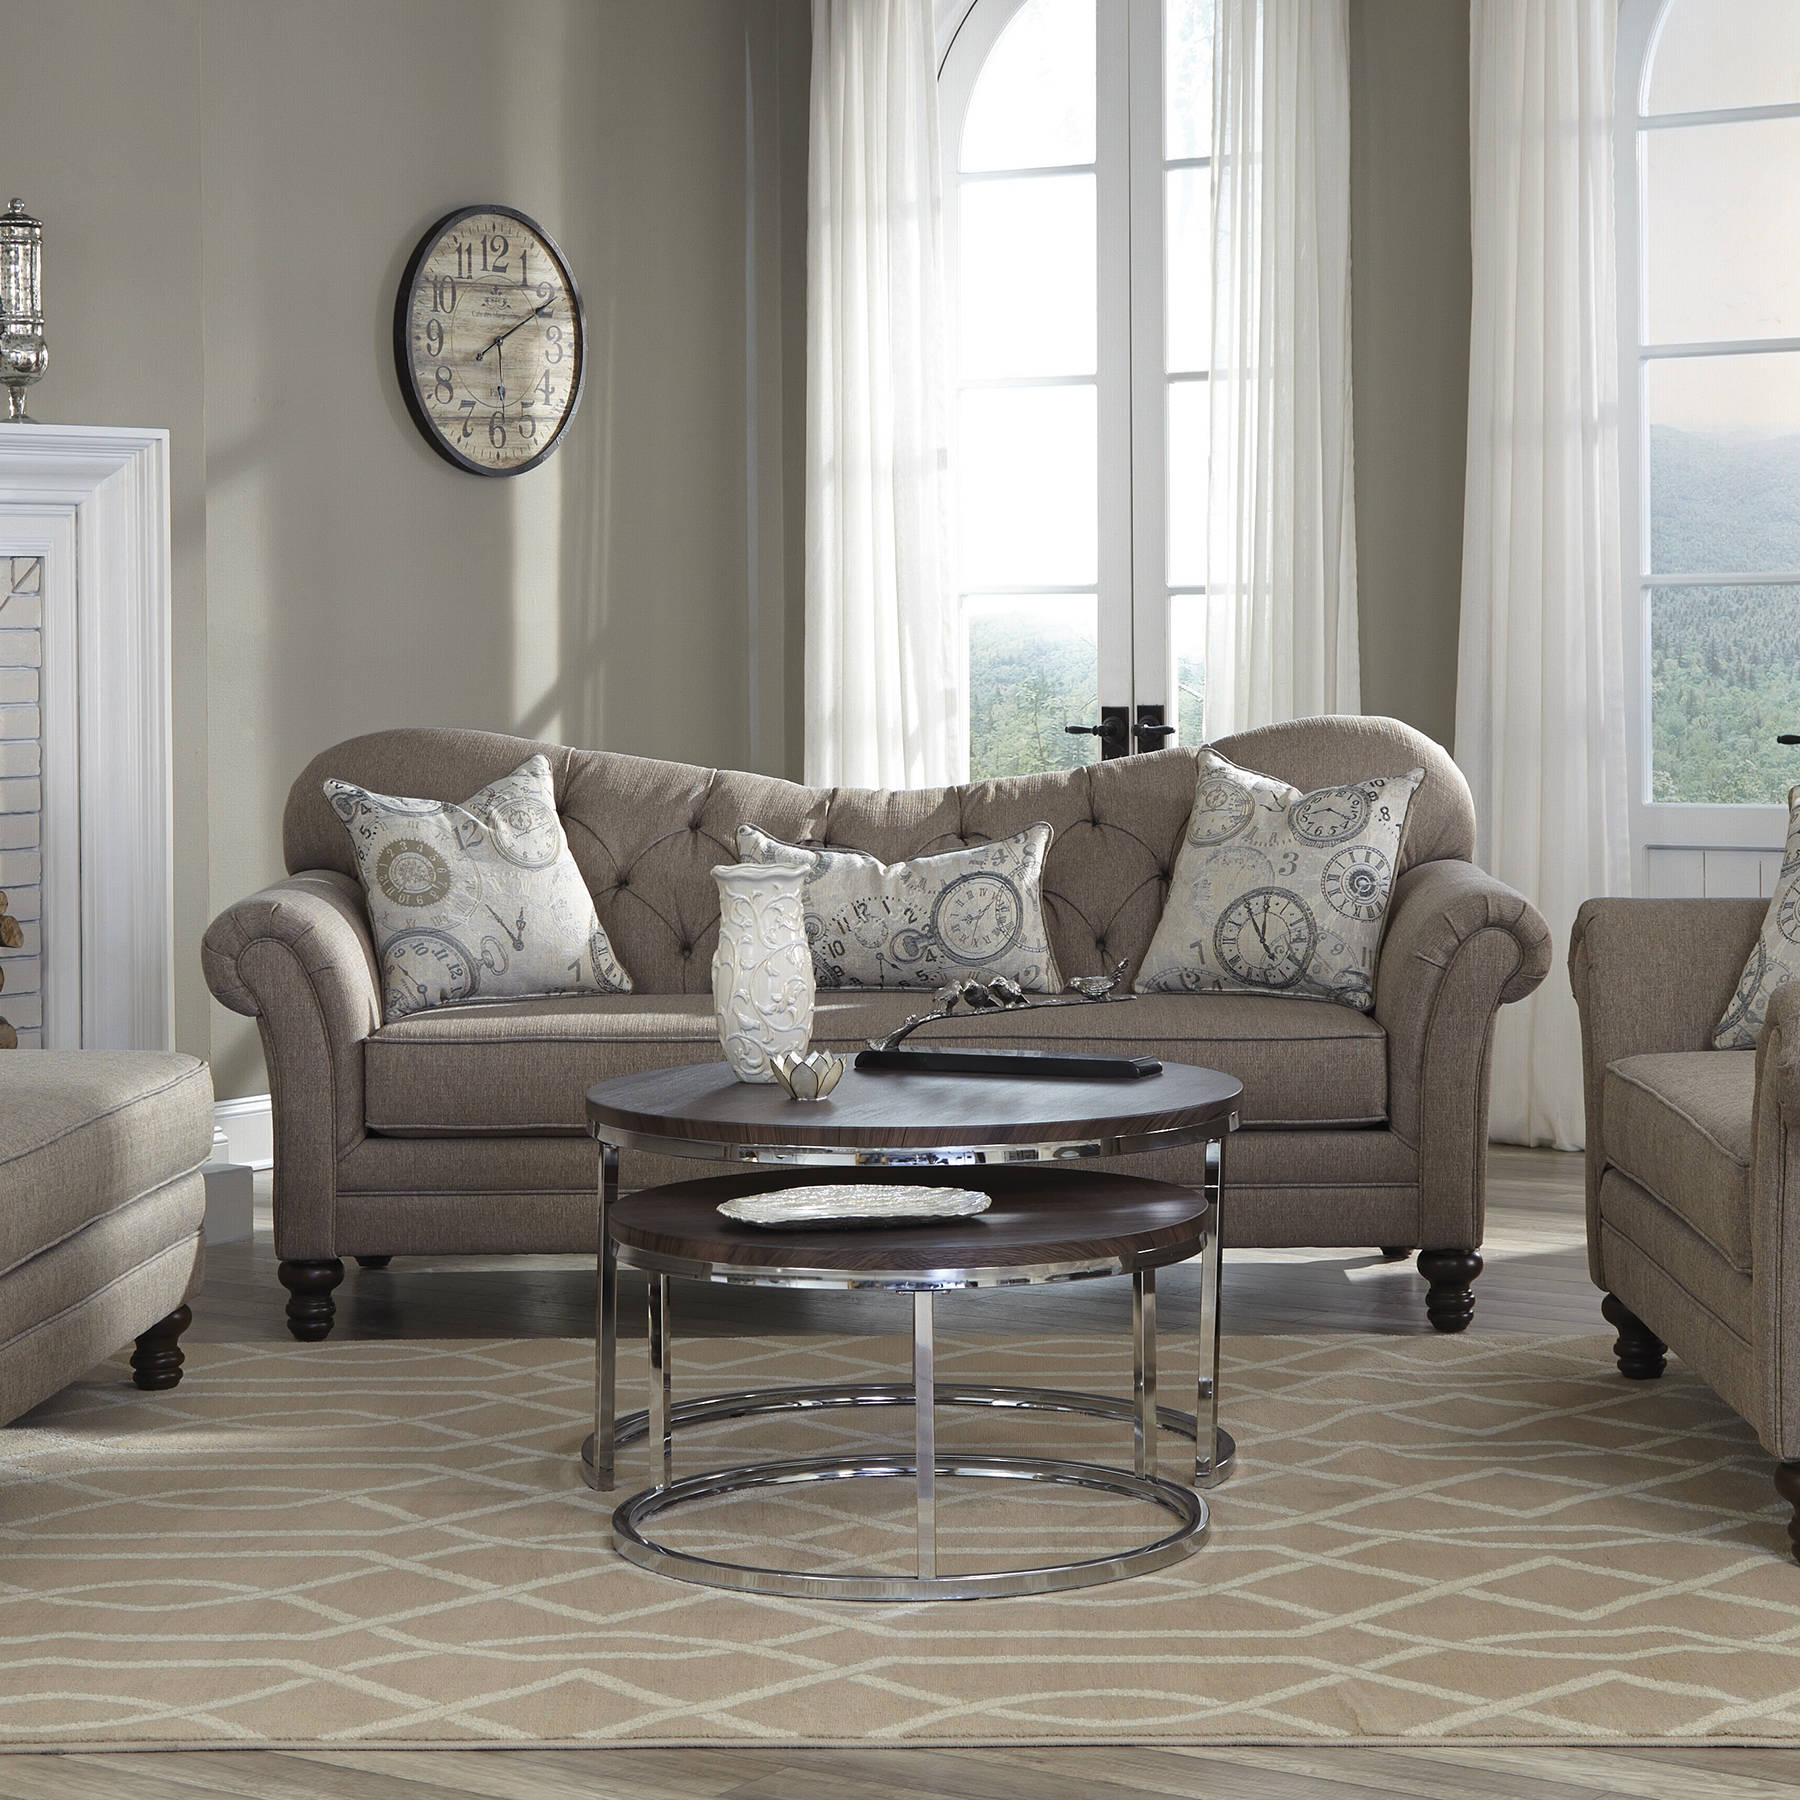 Carnahan Traditional Stone Grey Fabric Tufted Reverse Camel Back Sofa Click  To Enlarge Click To Enlarge ...